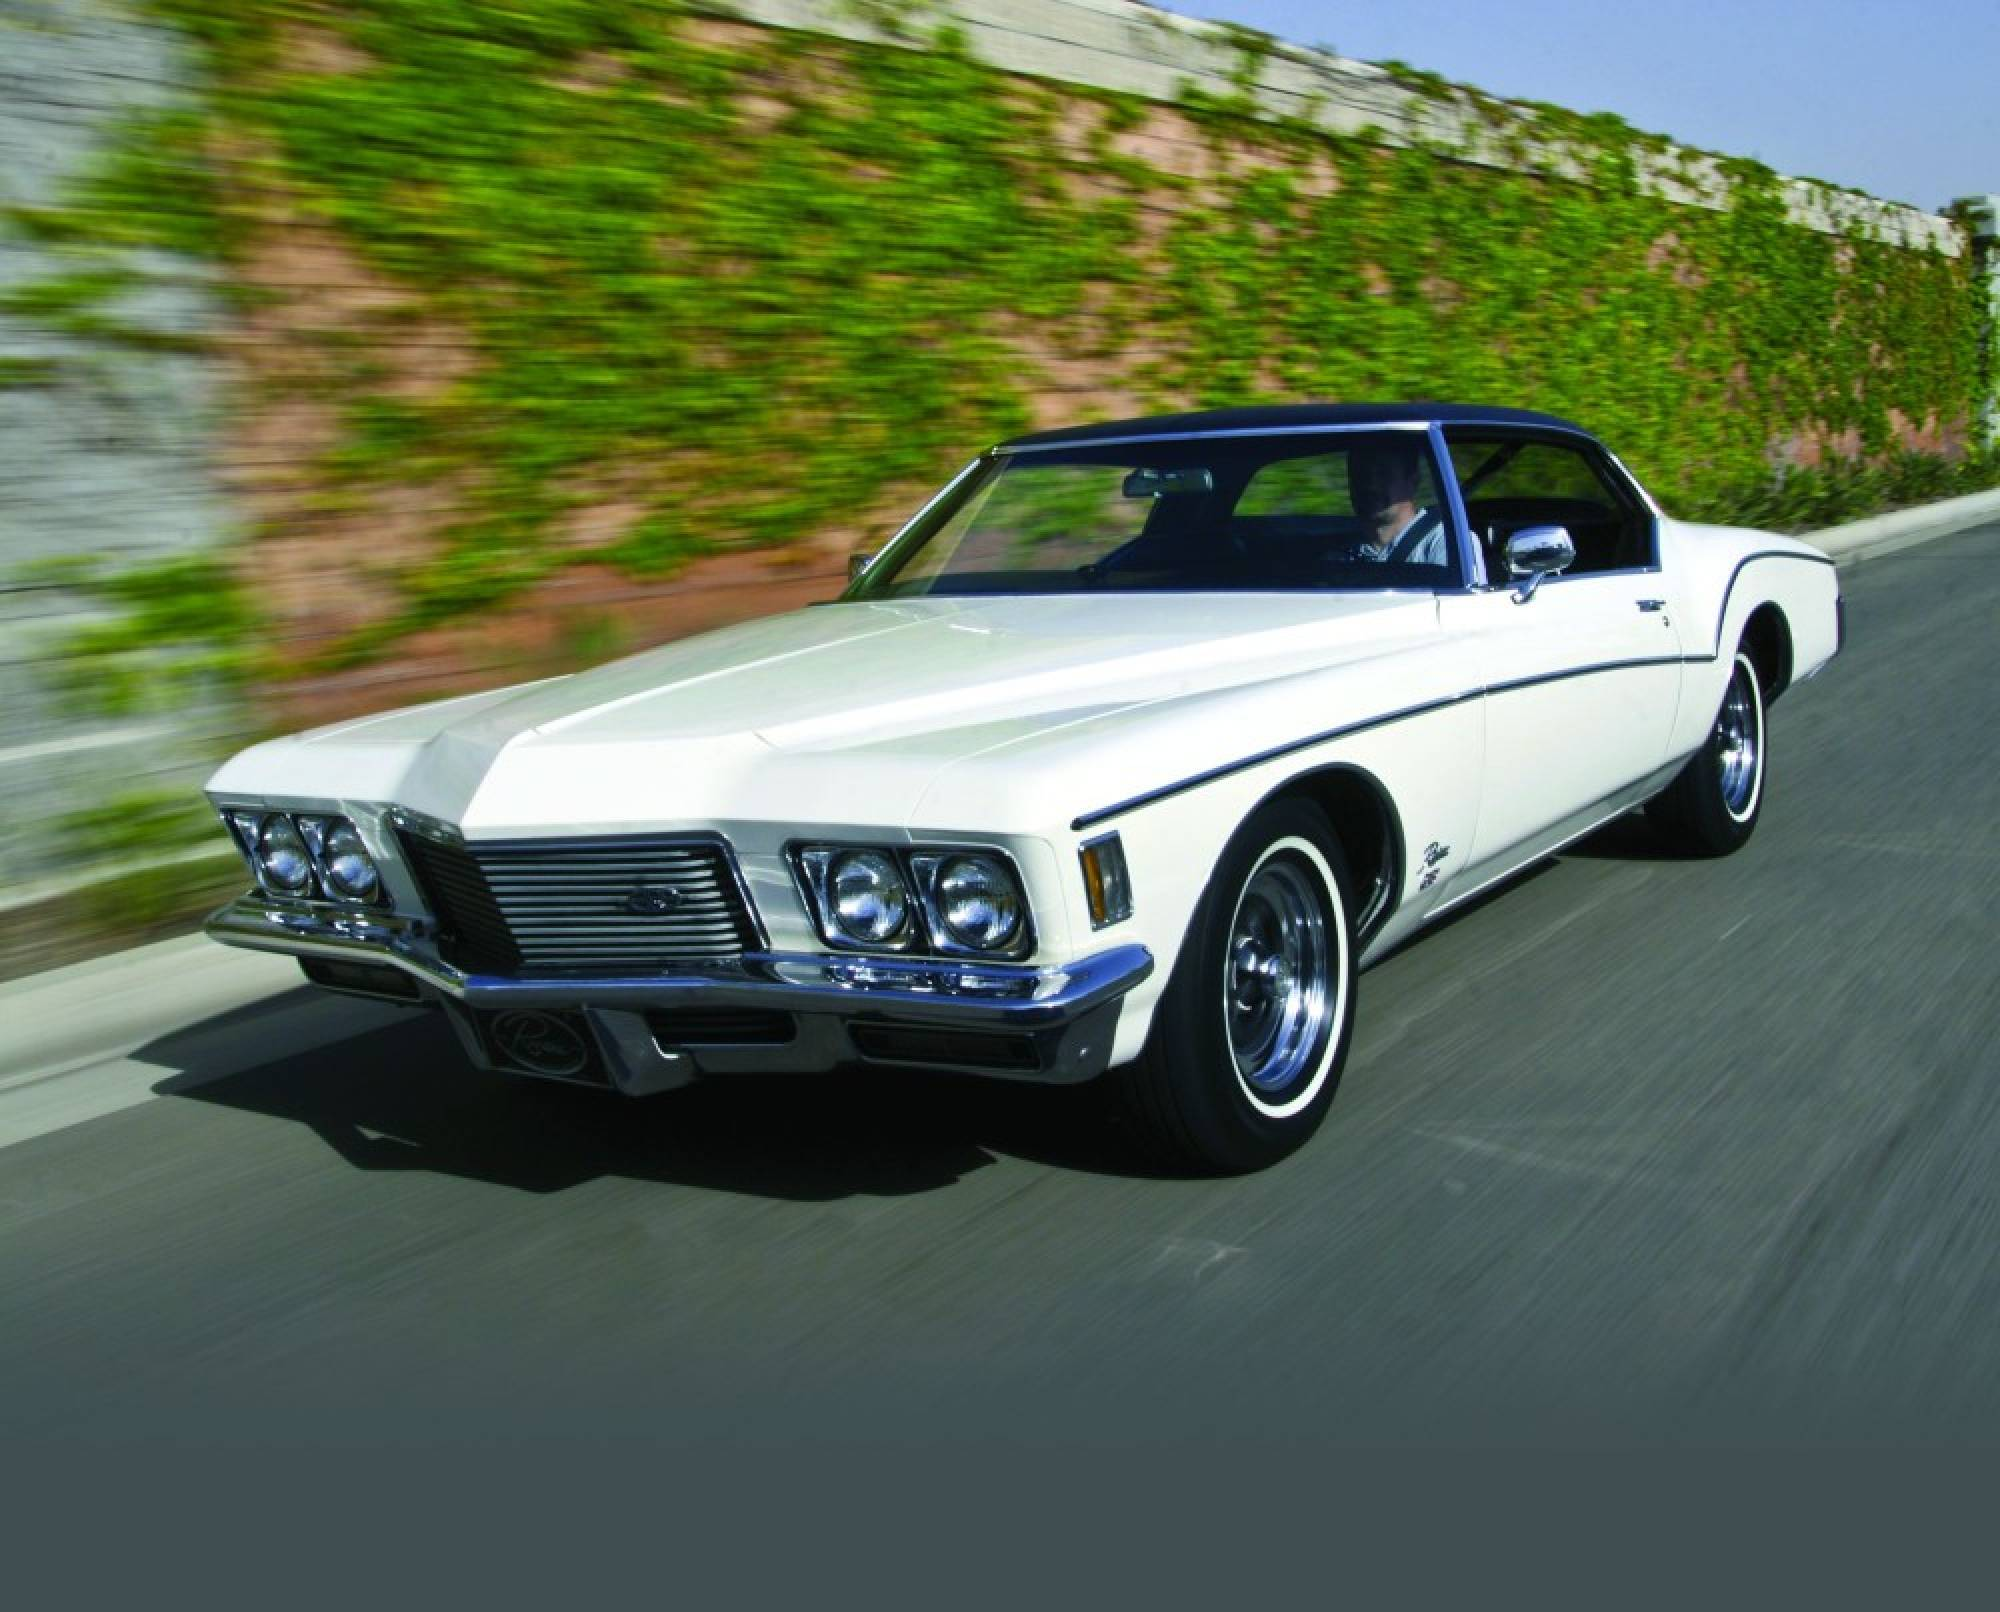 1971 Buick Riviera widescreen wallpapers